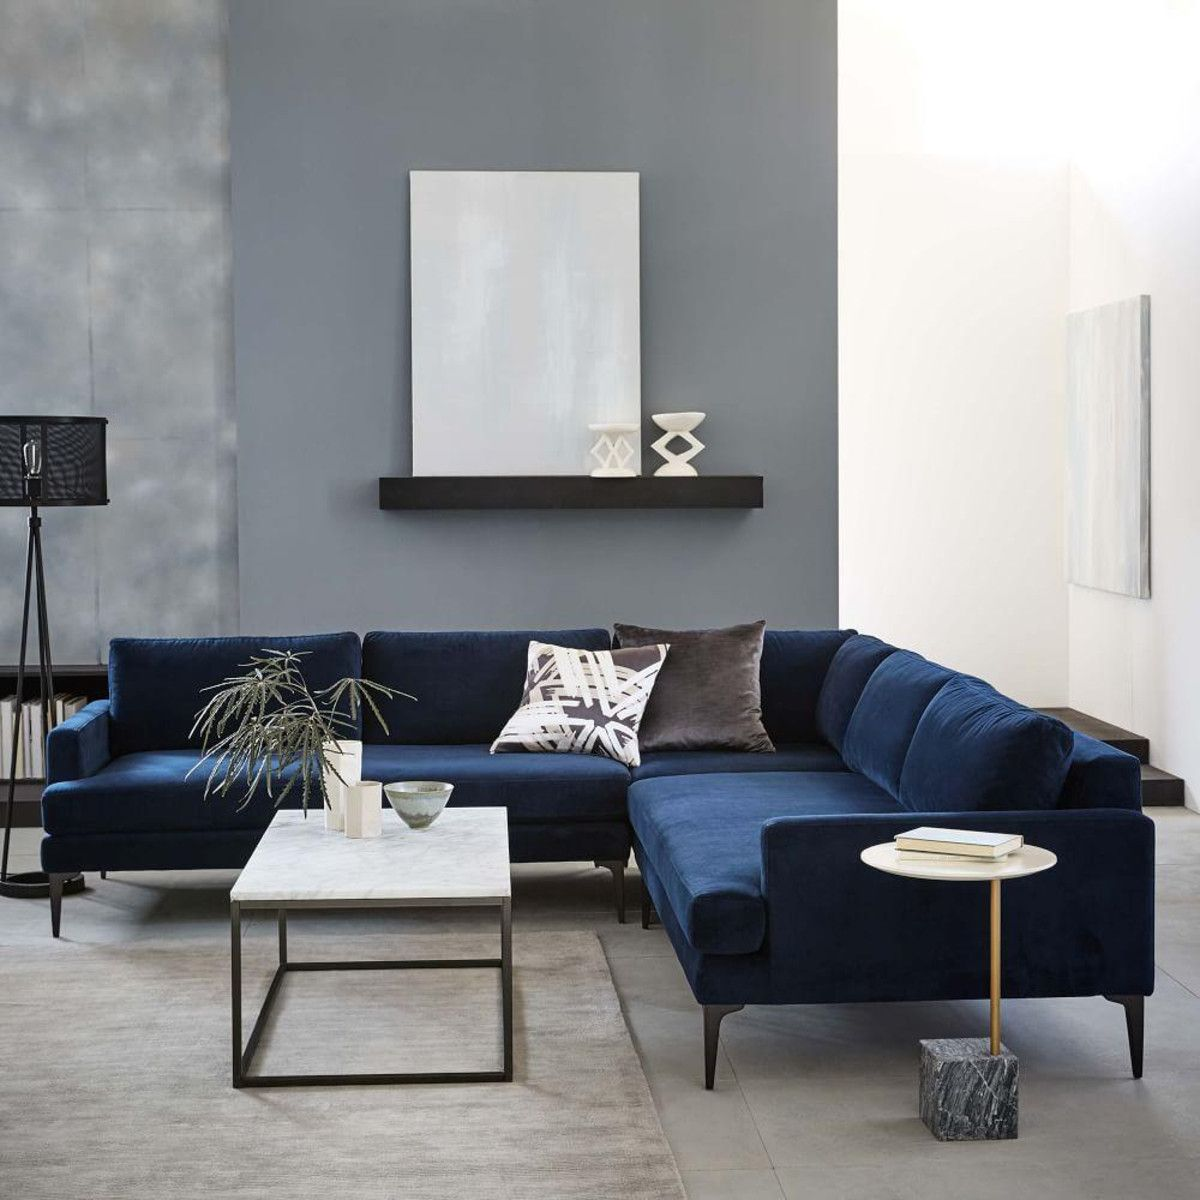 Andes L Shaped Sectional West Elm Canada Apartment Deco In 2019 Living Room Sectional Living Room Designs Living Room Arrangements